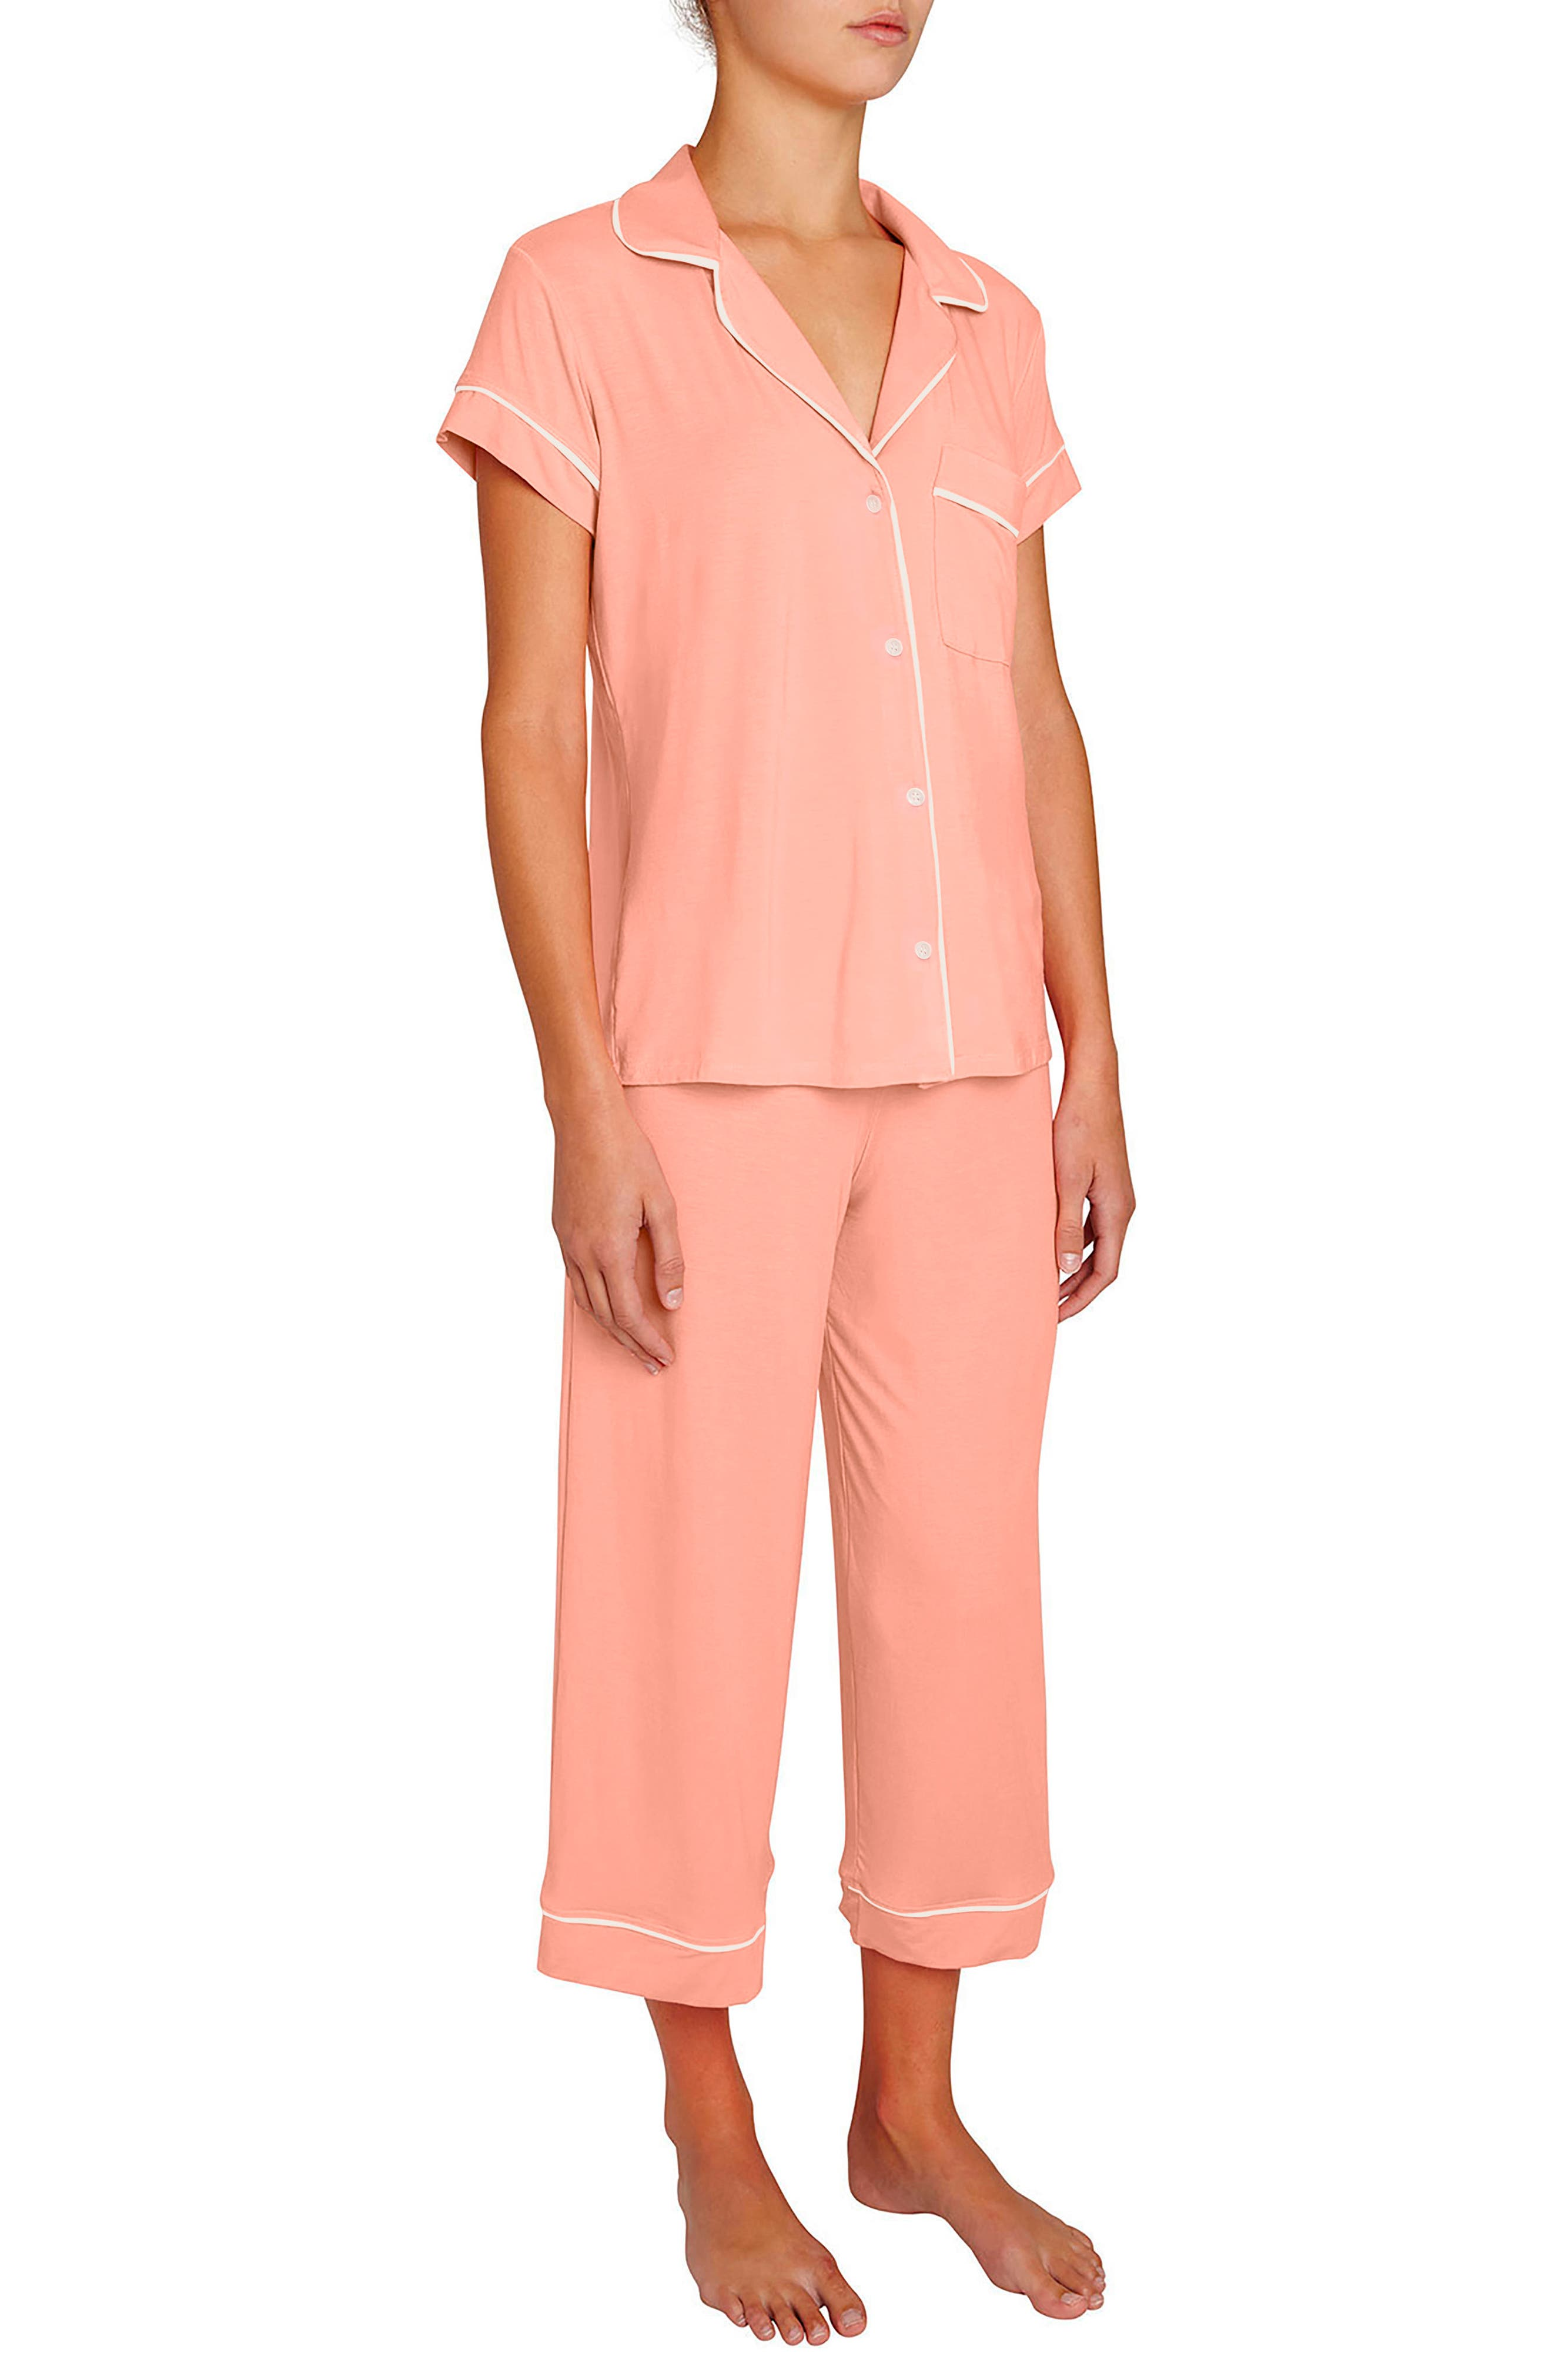 Gisele Crop Pajamas,                             Main thumbnail 1, color,                             Candlelight Peach/ Ivory